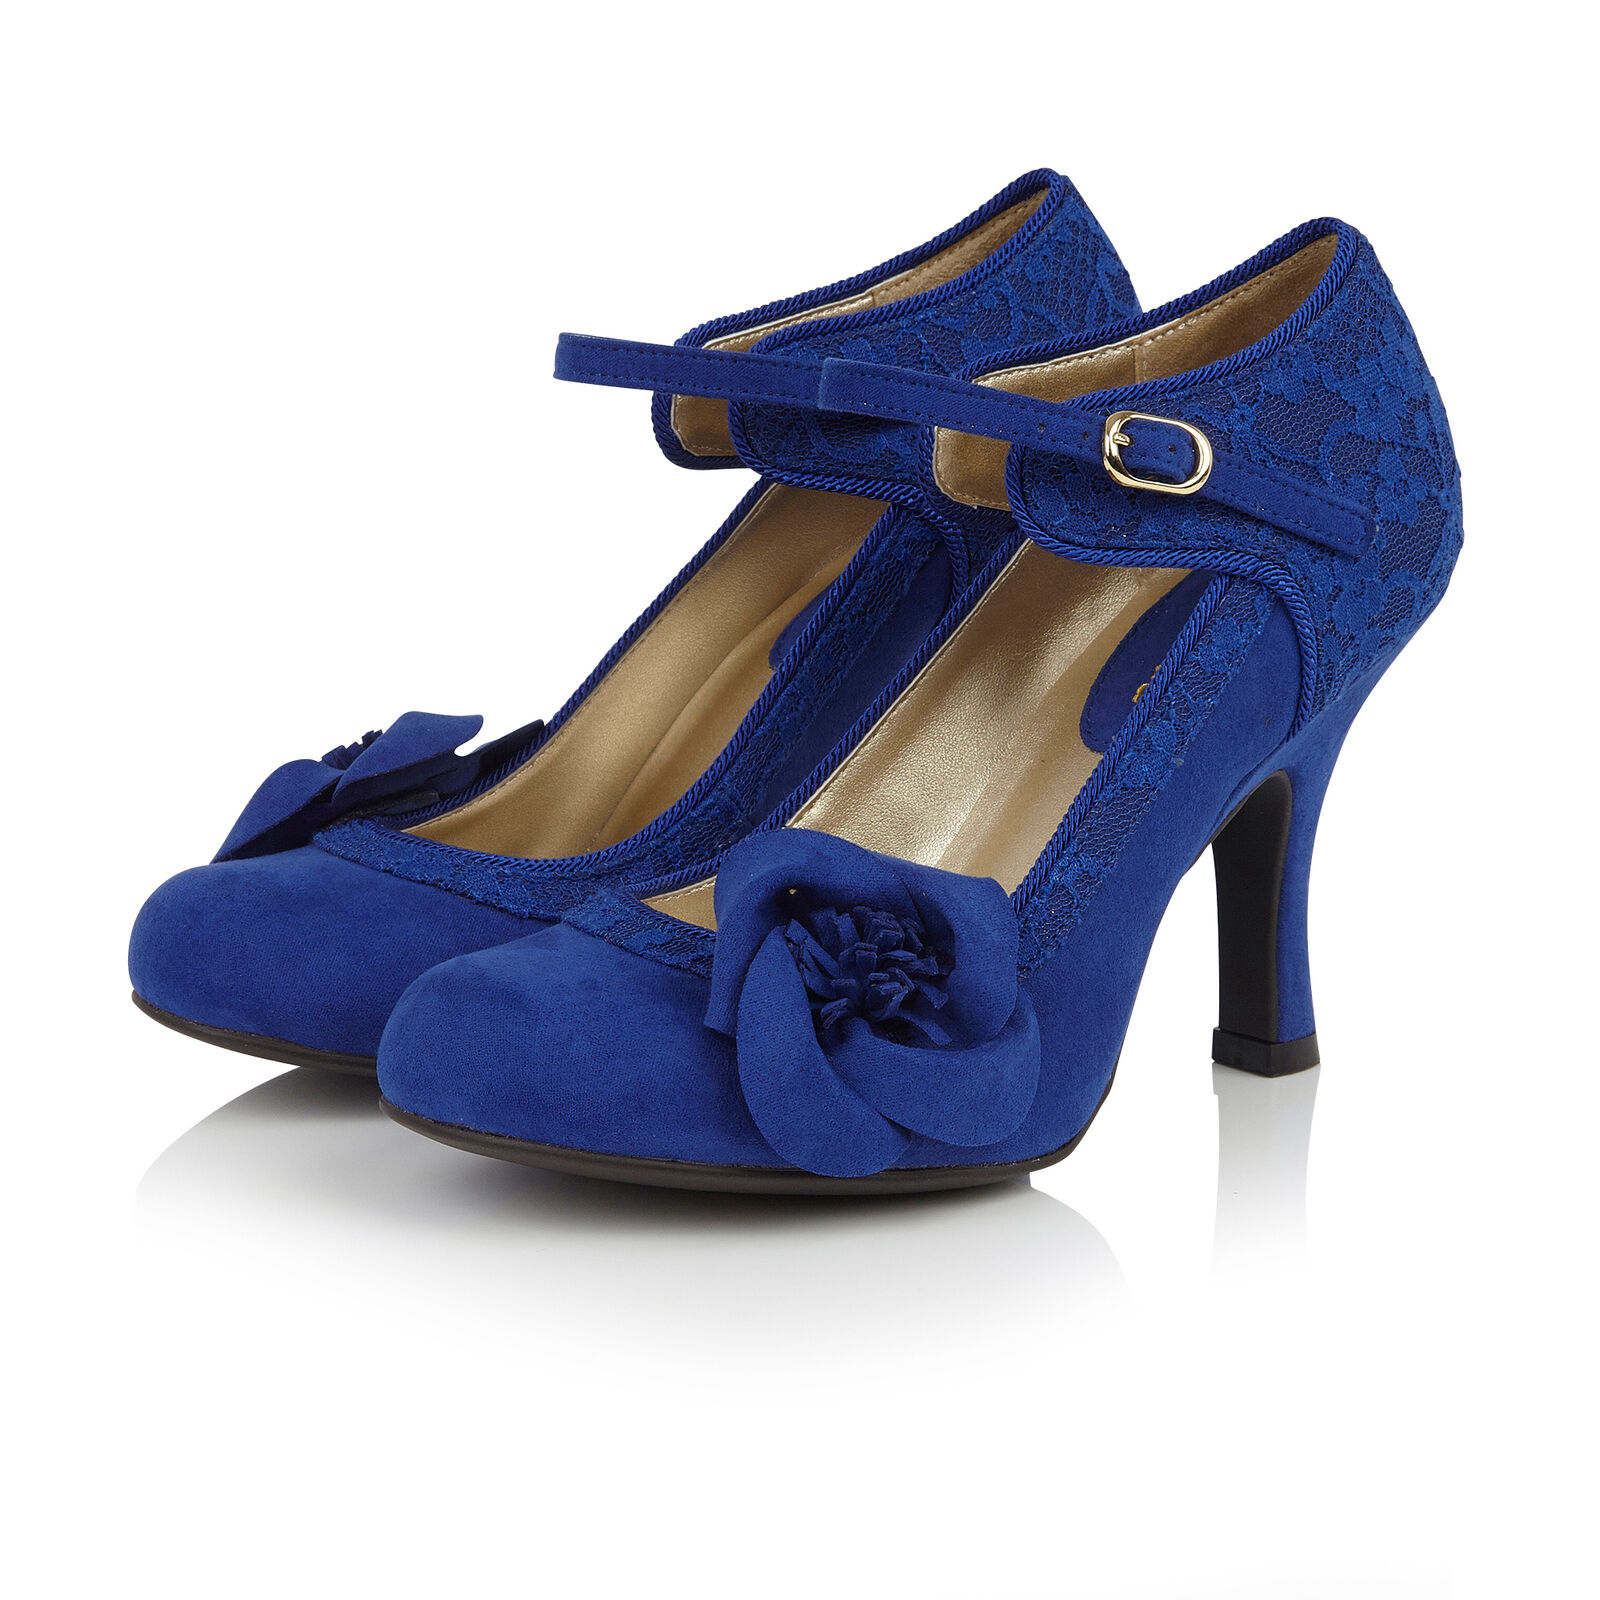 Ruby Shoo Belle Divino Ltd Edition Anna Lace Bar schuhe Cobalt Blau UK2-9 EU35-42